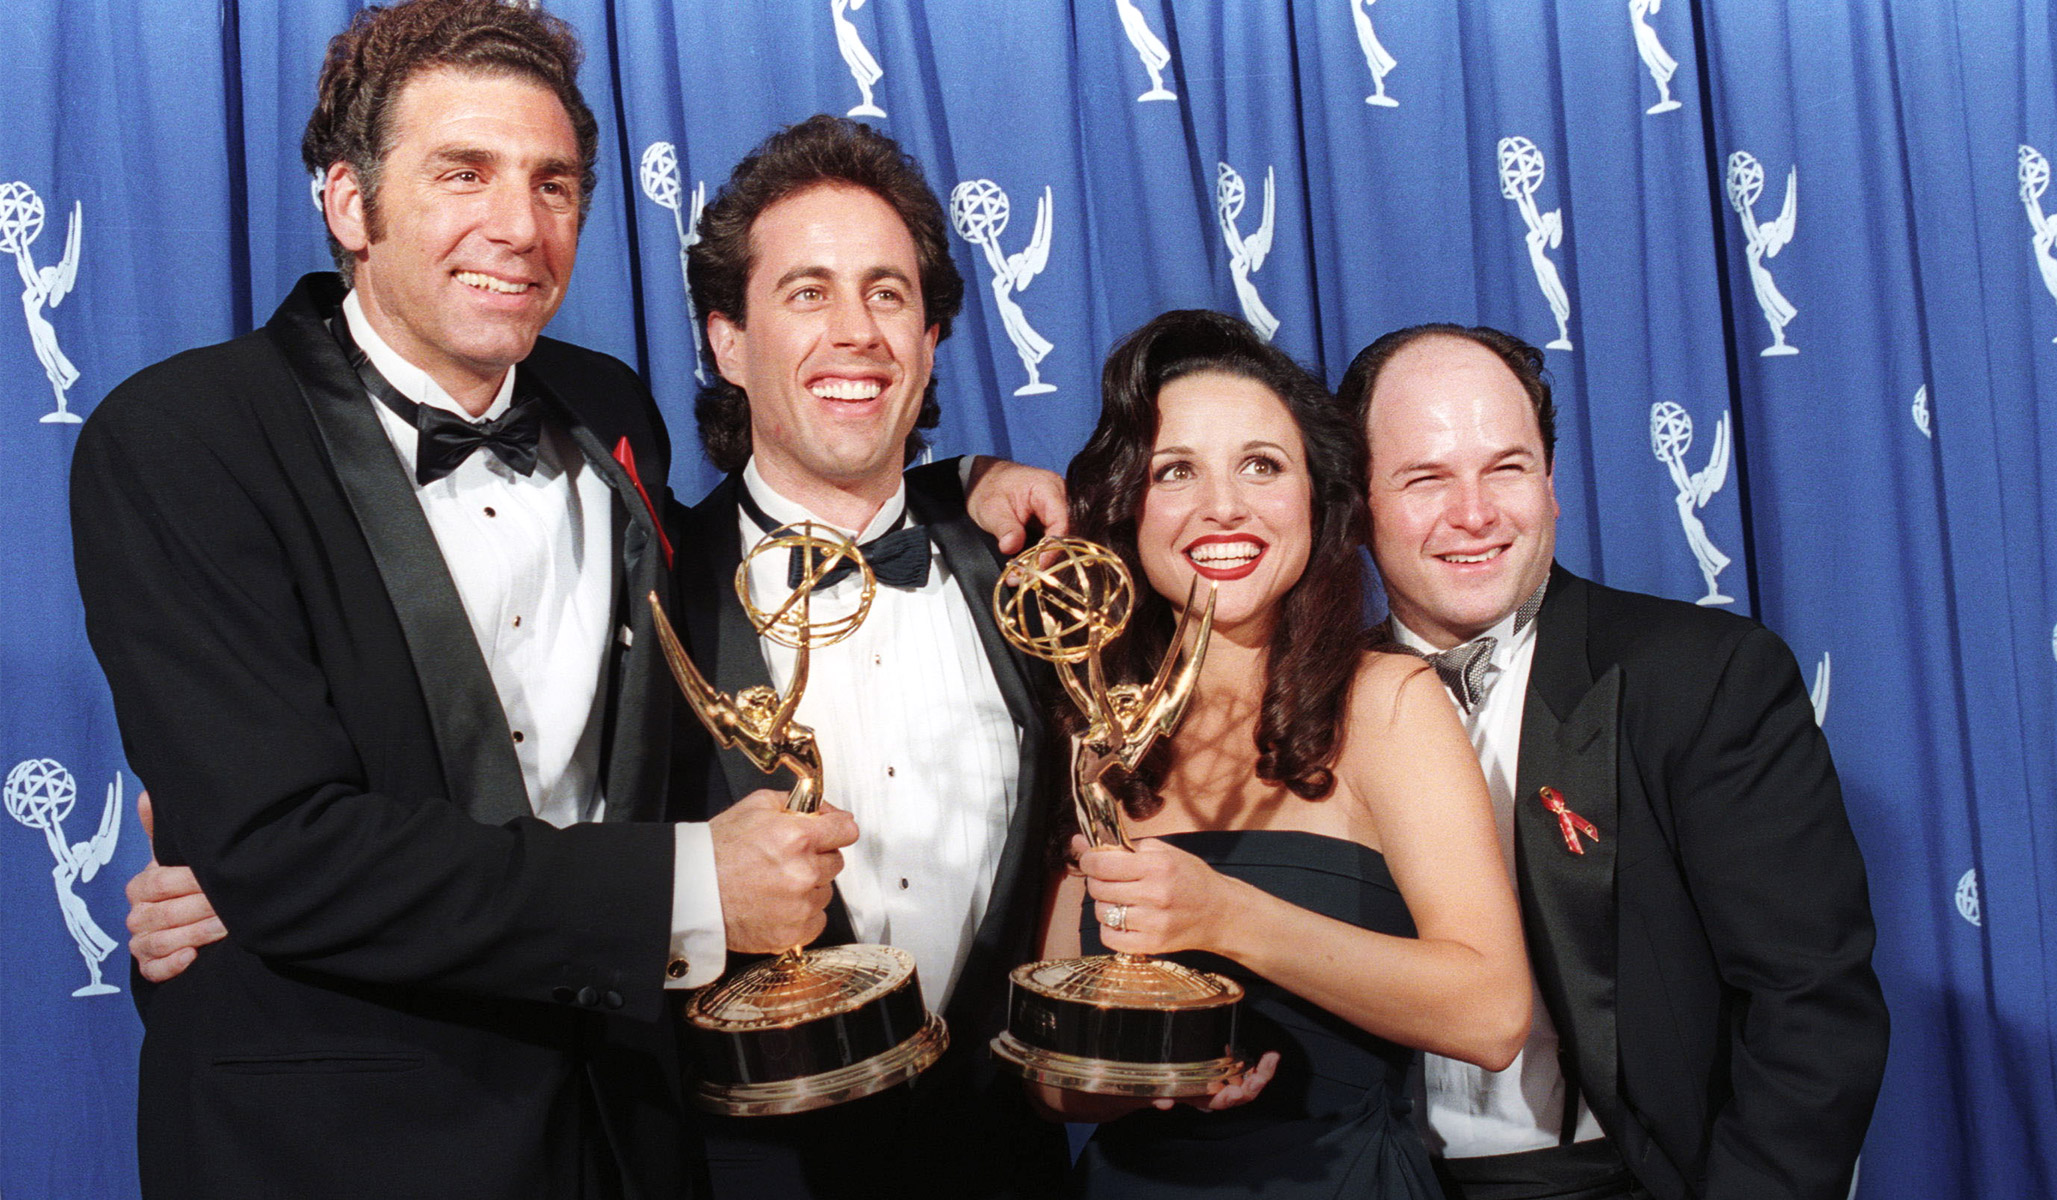 Thirty Years on, Seinfeld Still Can't Be Beat